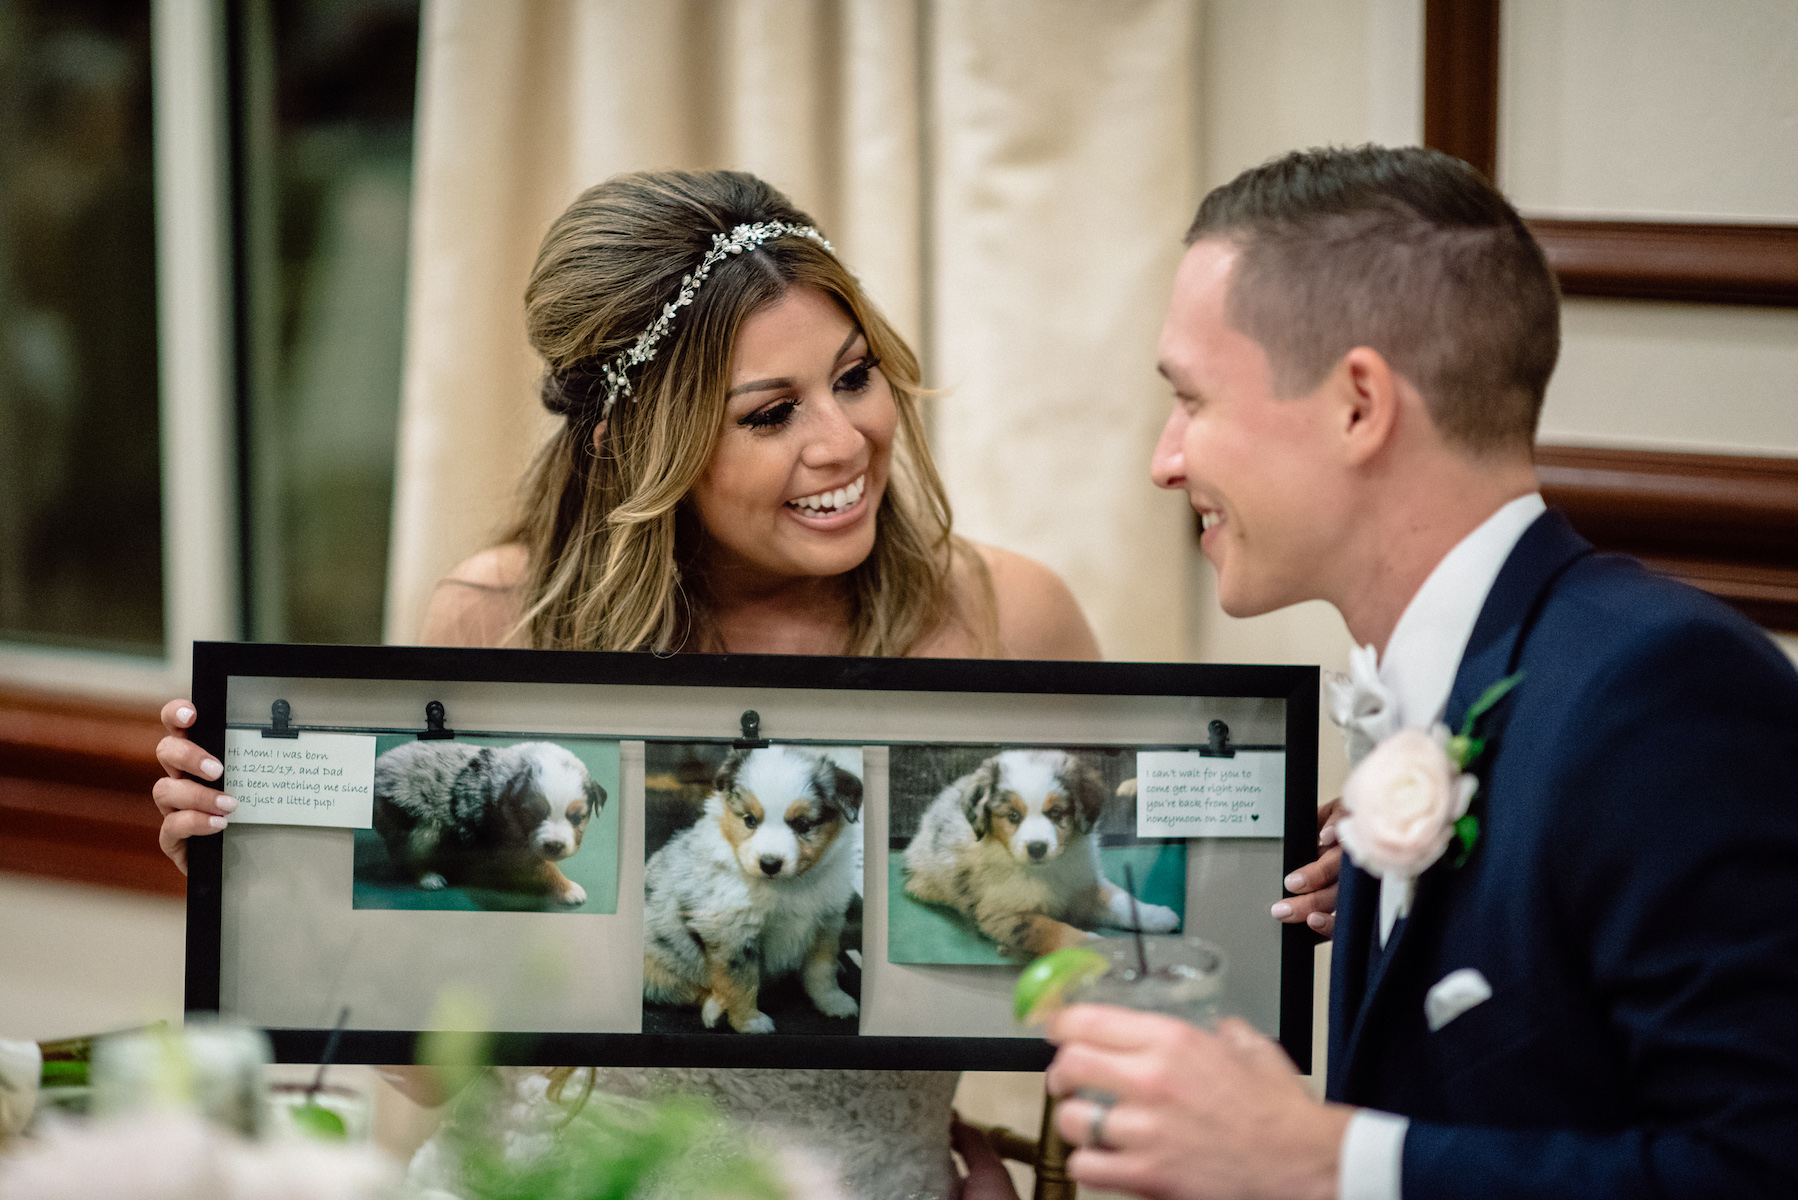 Wedding Surprise New Puppy Matt Steeves Photography Naples FL weddings Fort Myers.jpg